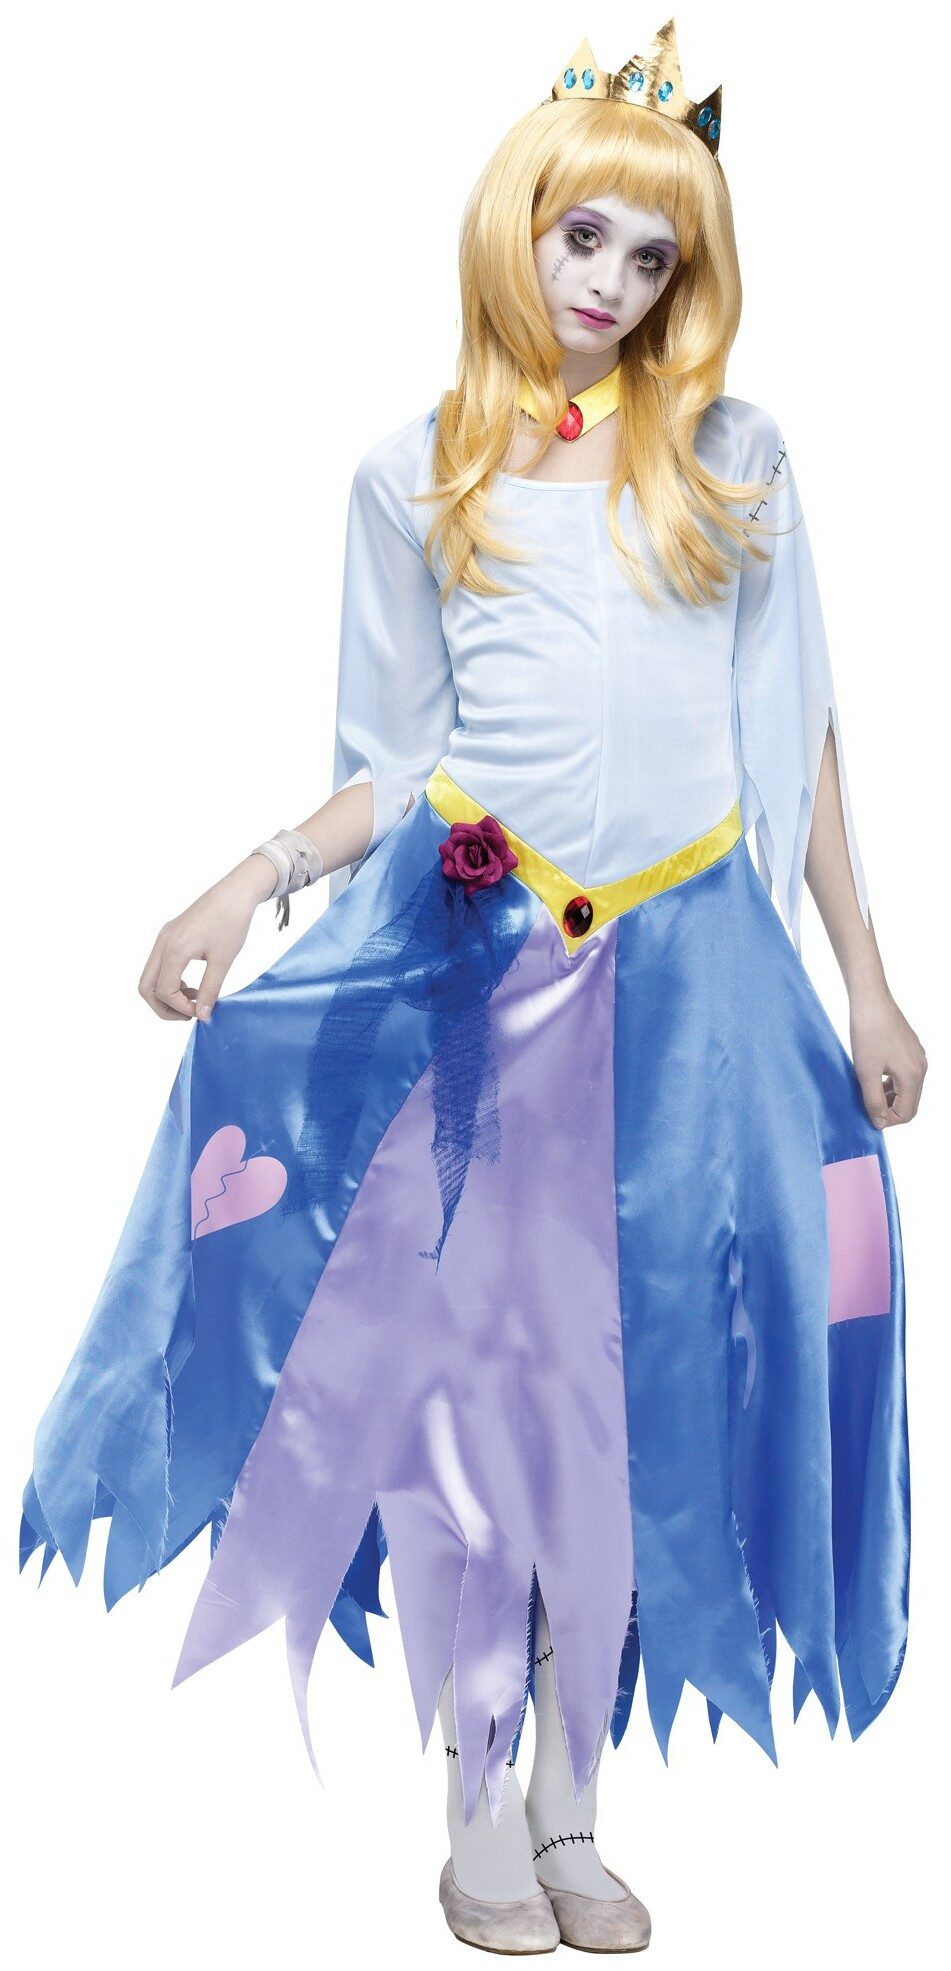 sc 1 st  Mr. Costumes & Zombie Sleeping Beauty Princess Kids Costume - Mr. Costumes